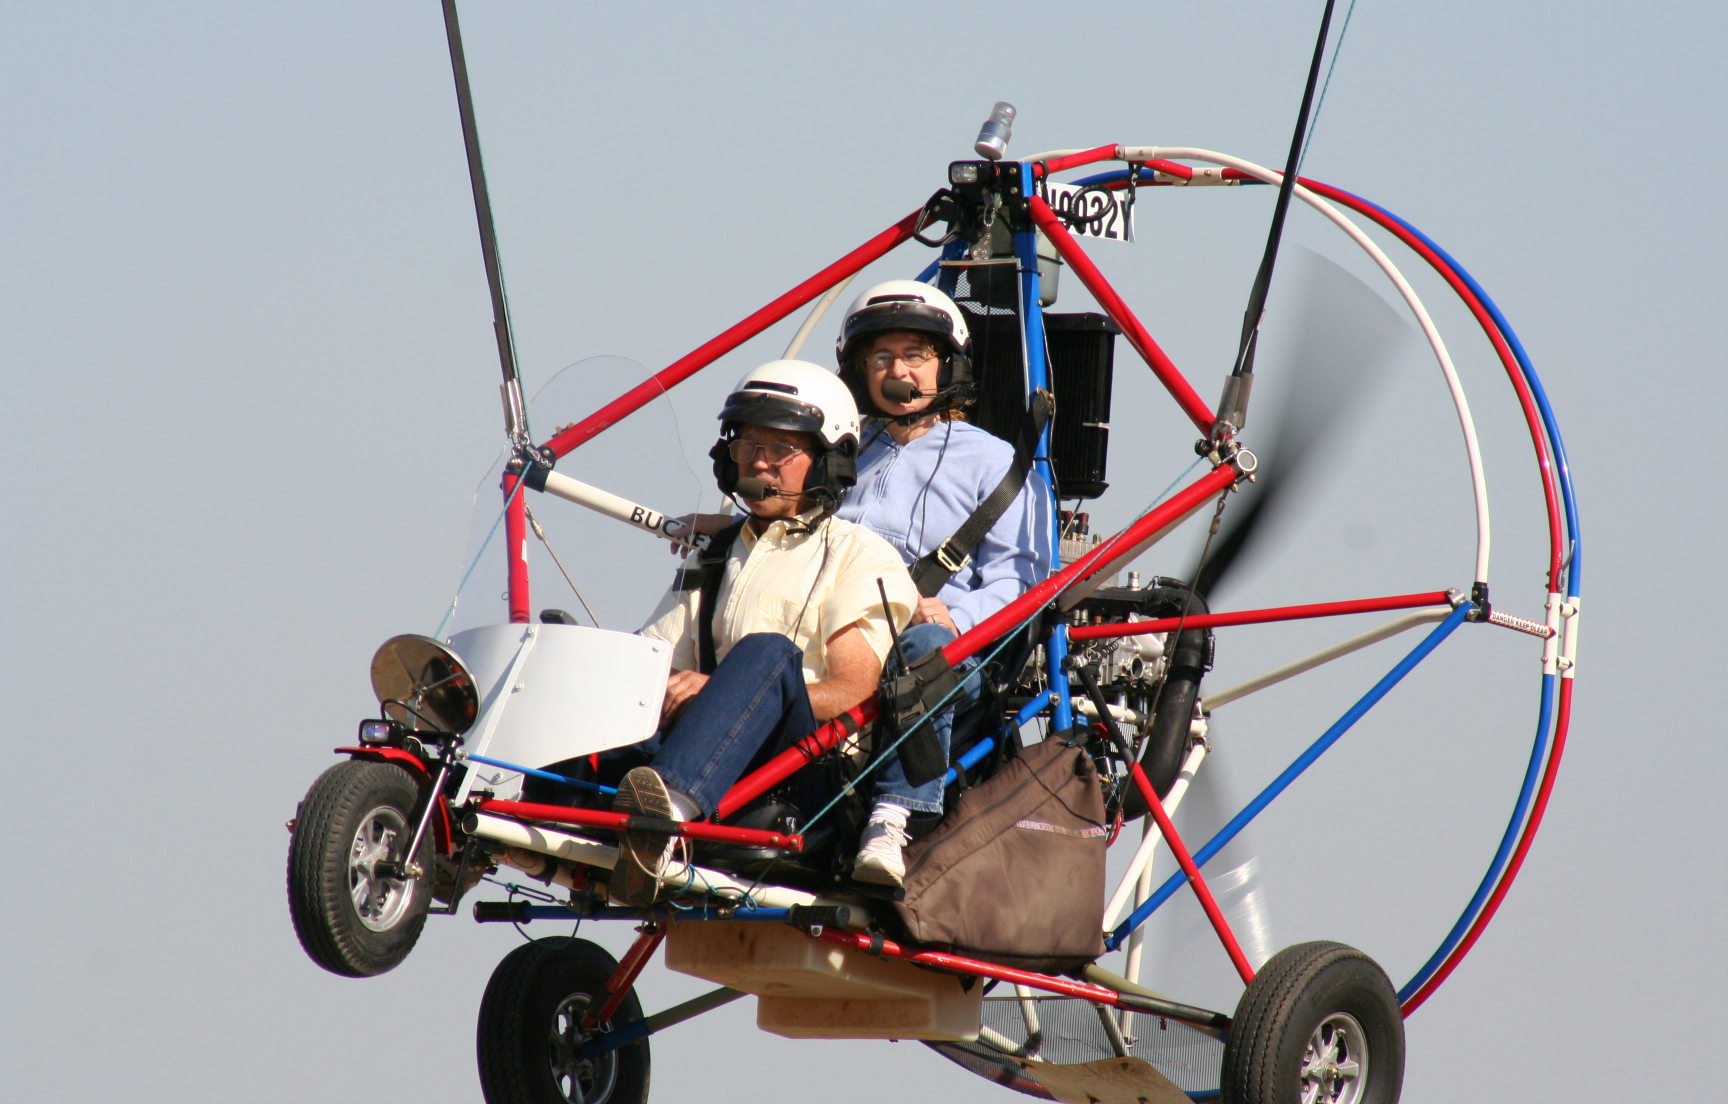 Corning, CA   –  Nov 30-Dec 1, 2018 Repairman Inspection Powered Parachute